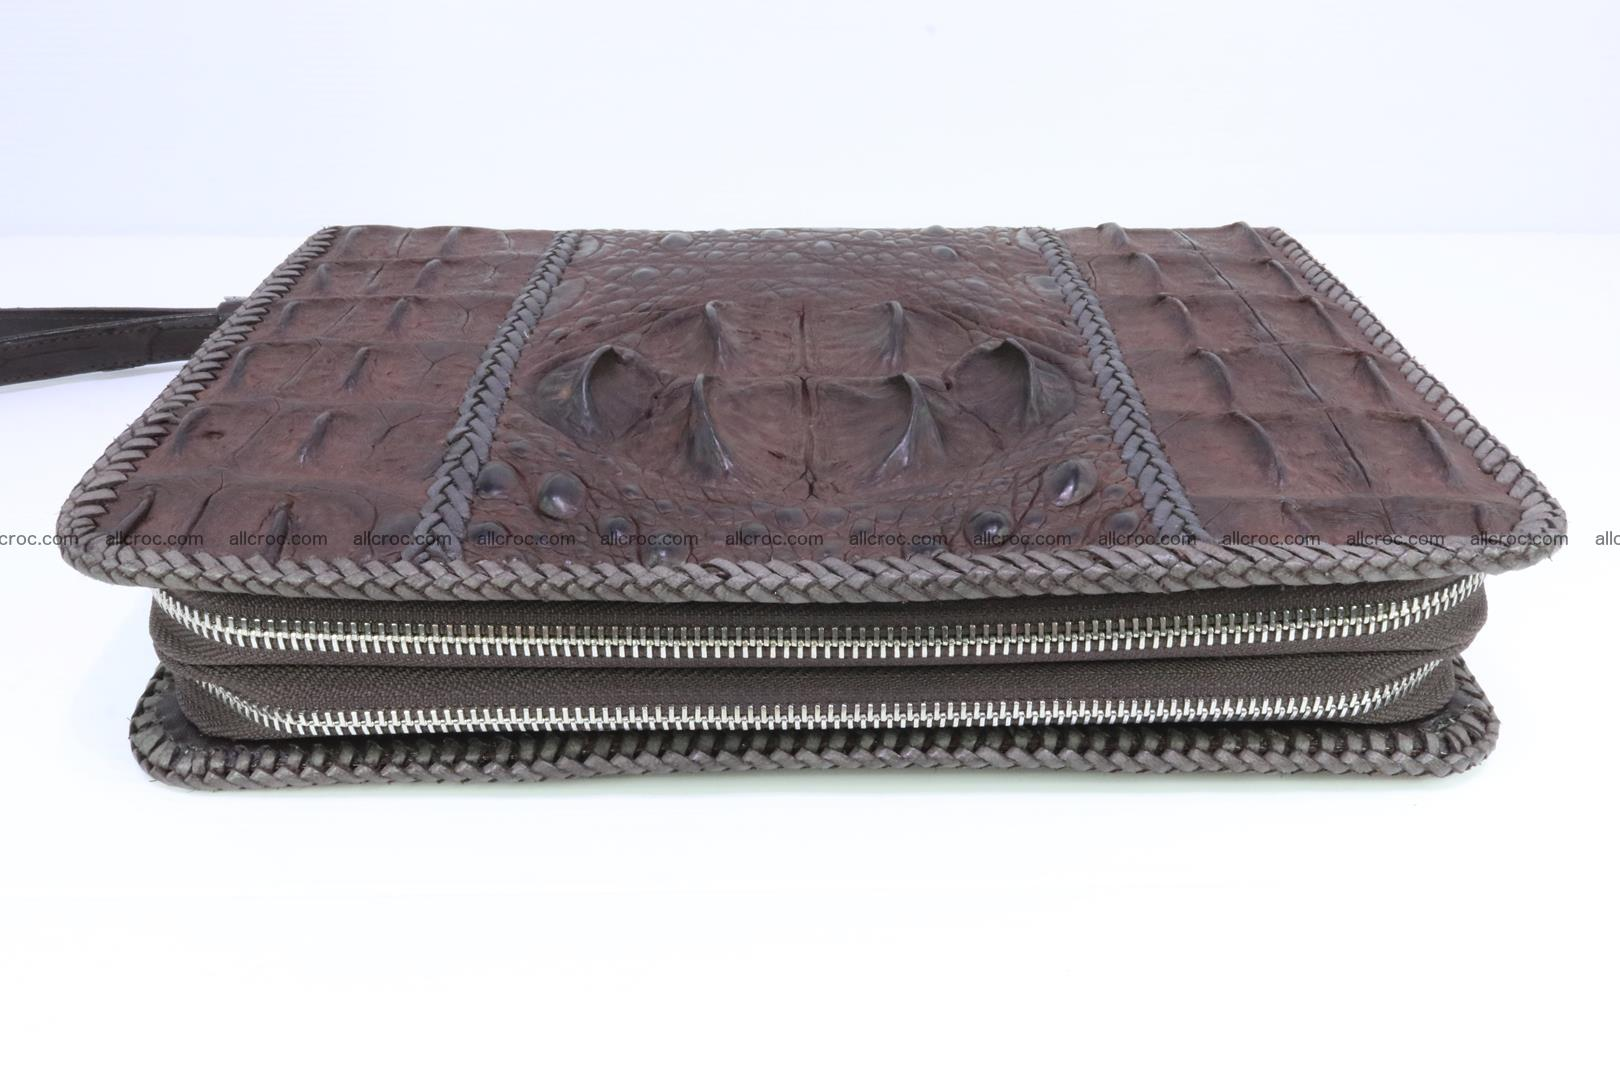 Crocodile clutch for men from genuine hornback crocodile leather 163 Foto 2